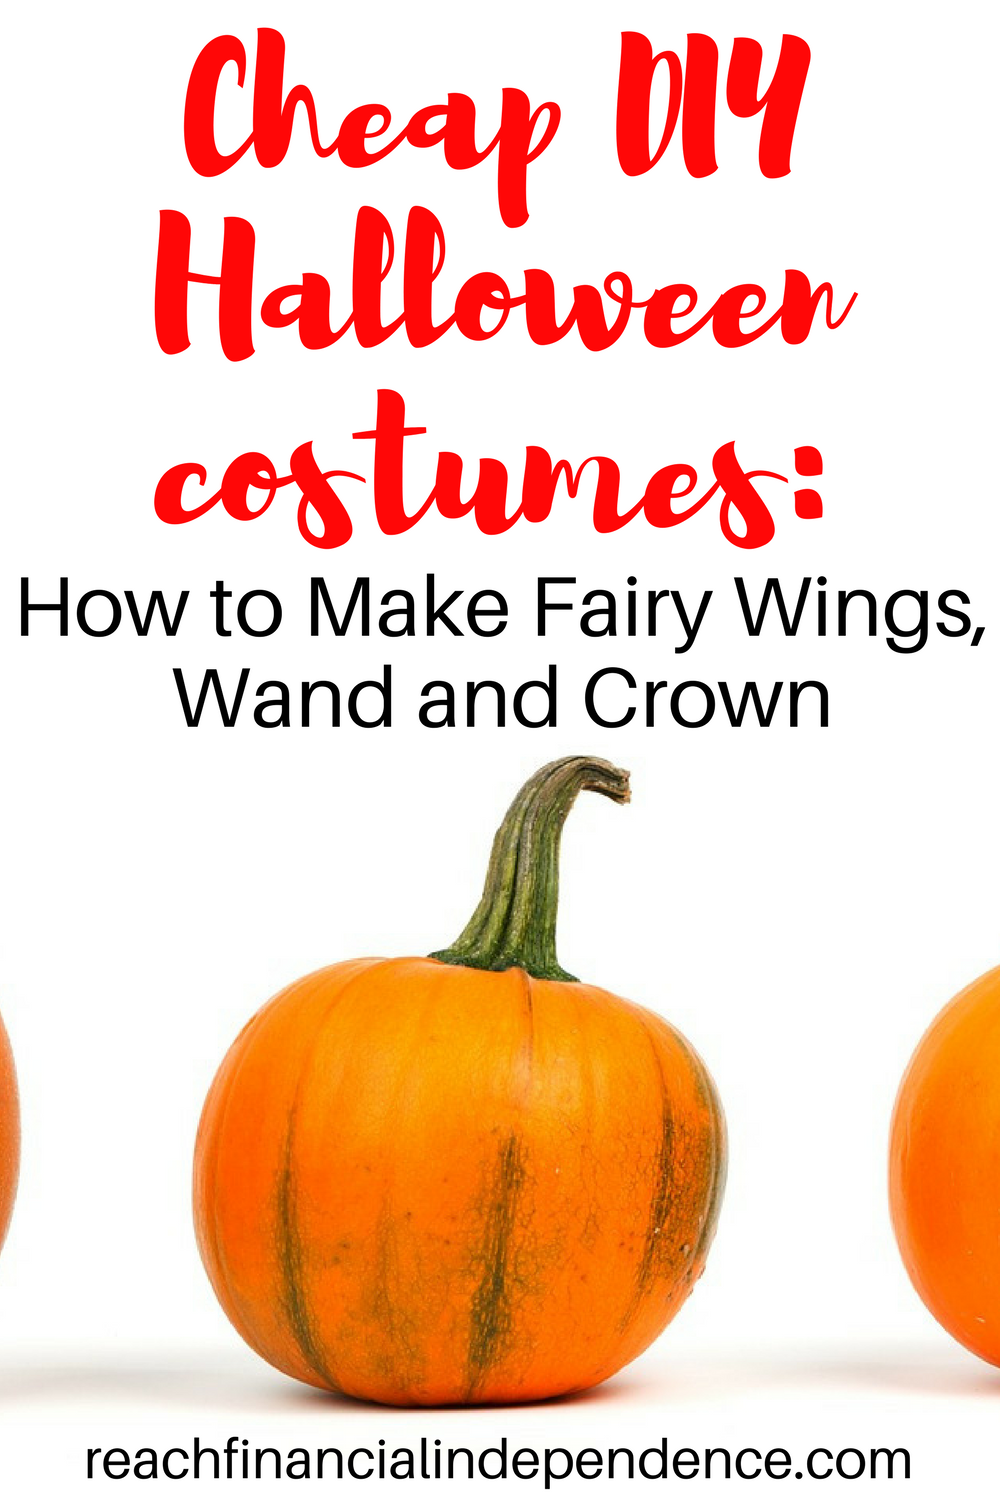 How to Make Fairy Wings, Wand and Crown